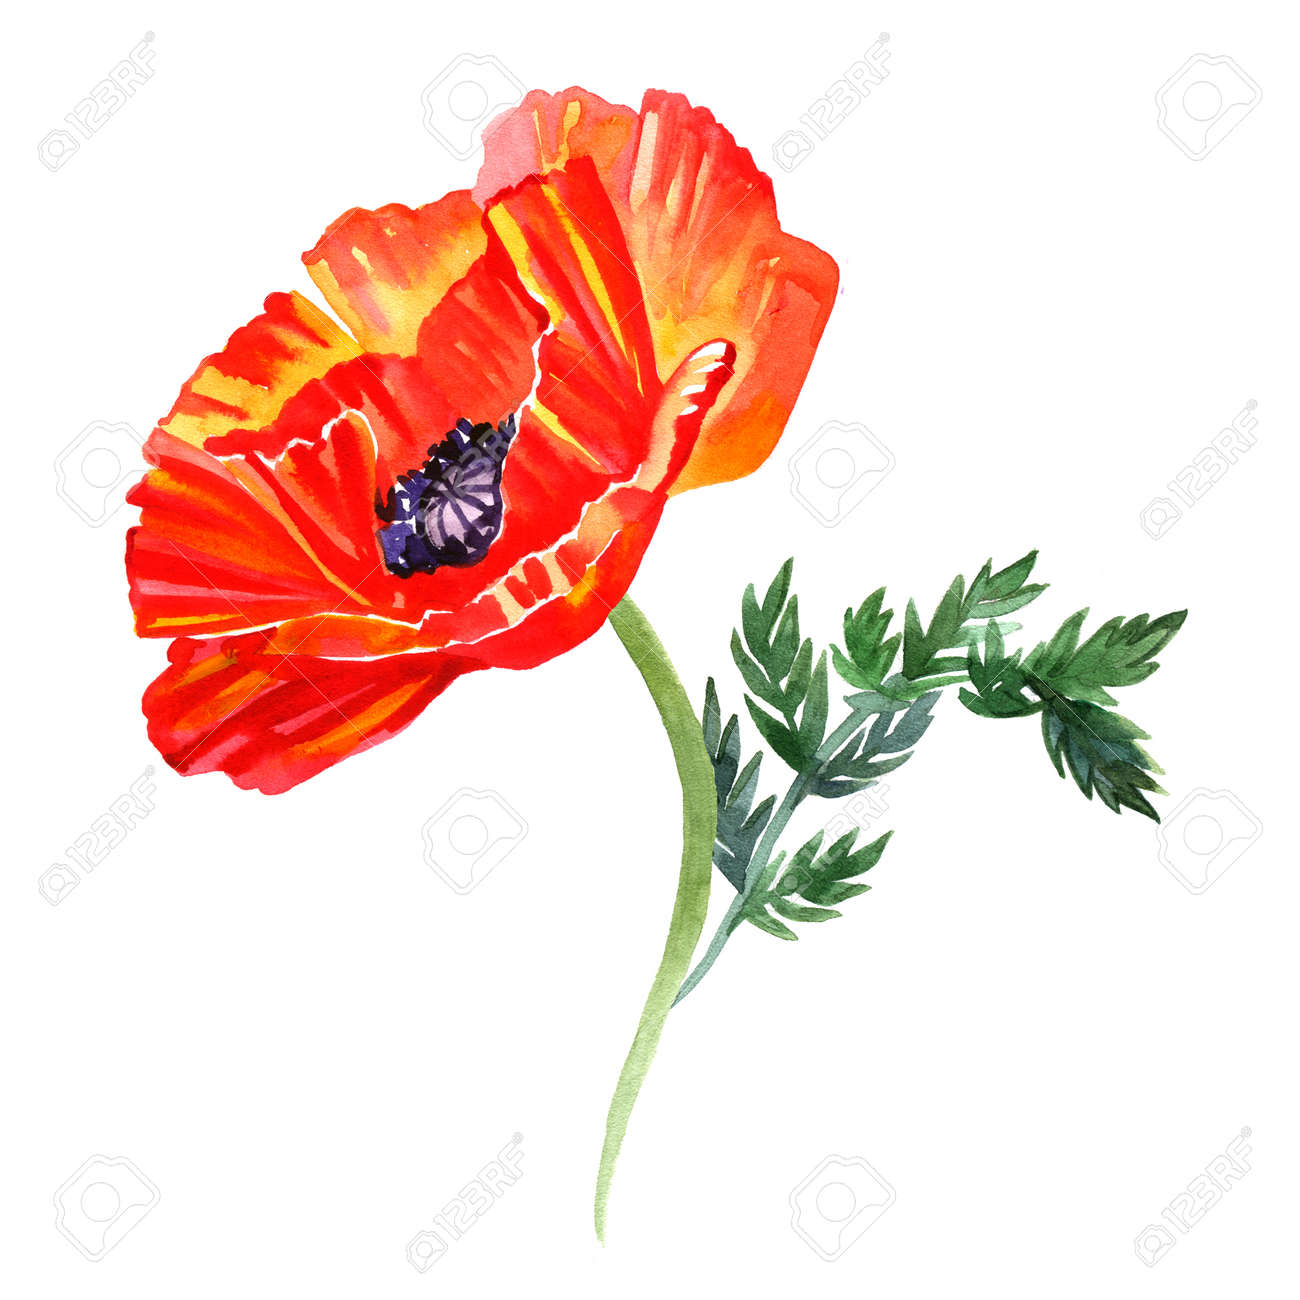 Watercolor Illustration Of Poppy Flowers Perfect For Greeting